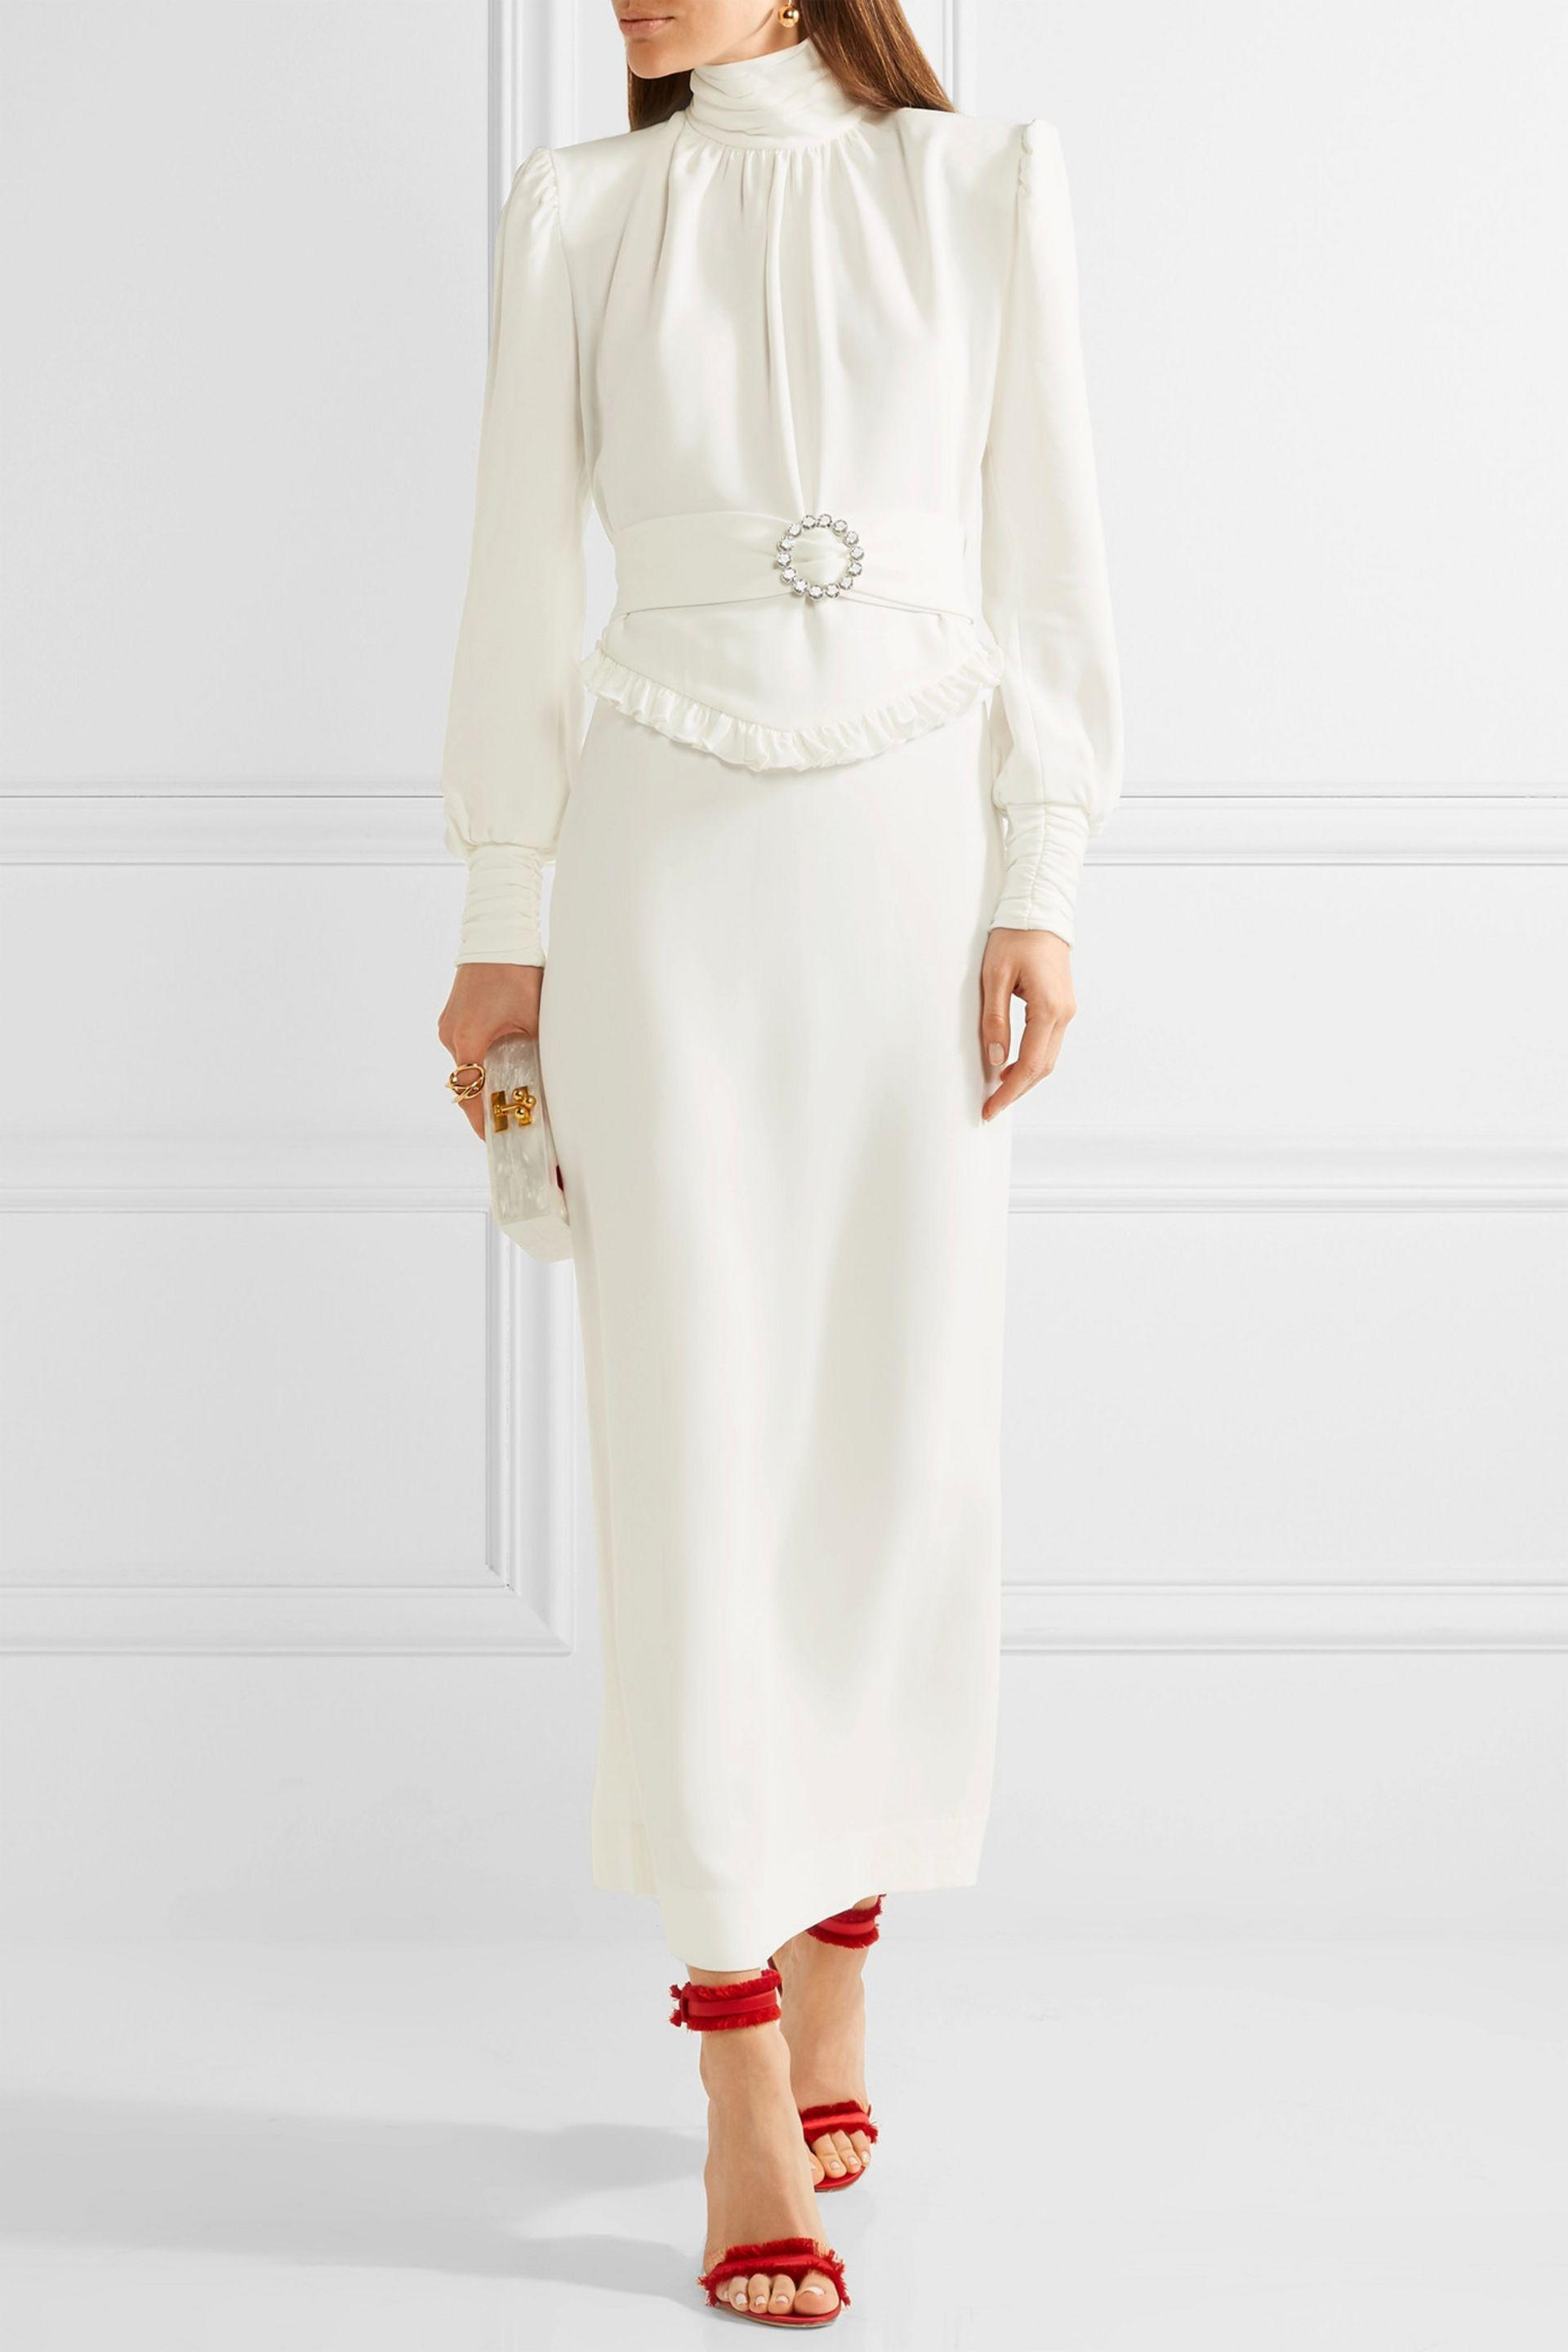 65c15a4fad1e Lyst - Alessandra Rich Ruffle-trimmed Stretch-cady Gown in White